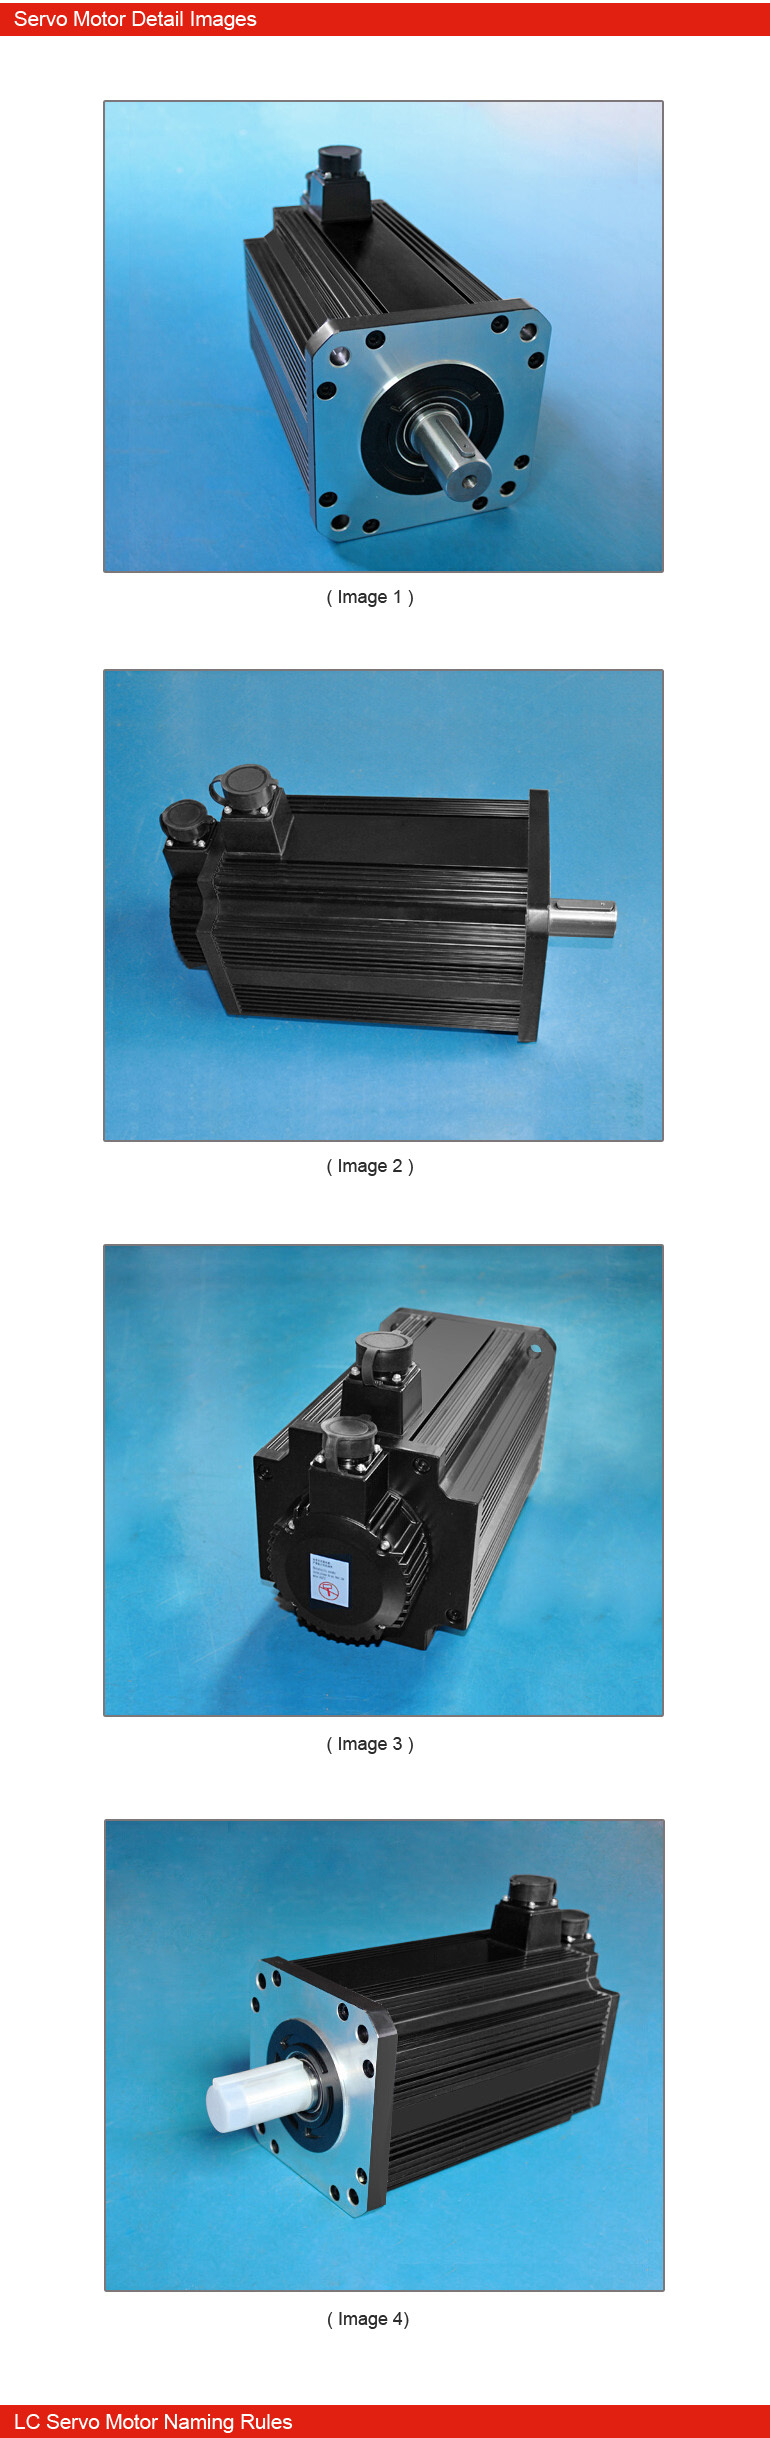 5.5KW Servo Motor Sets 3 phase 180 Flange Large Power 35NM 1500rolls for Earth-moving Machinery